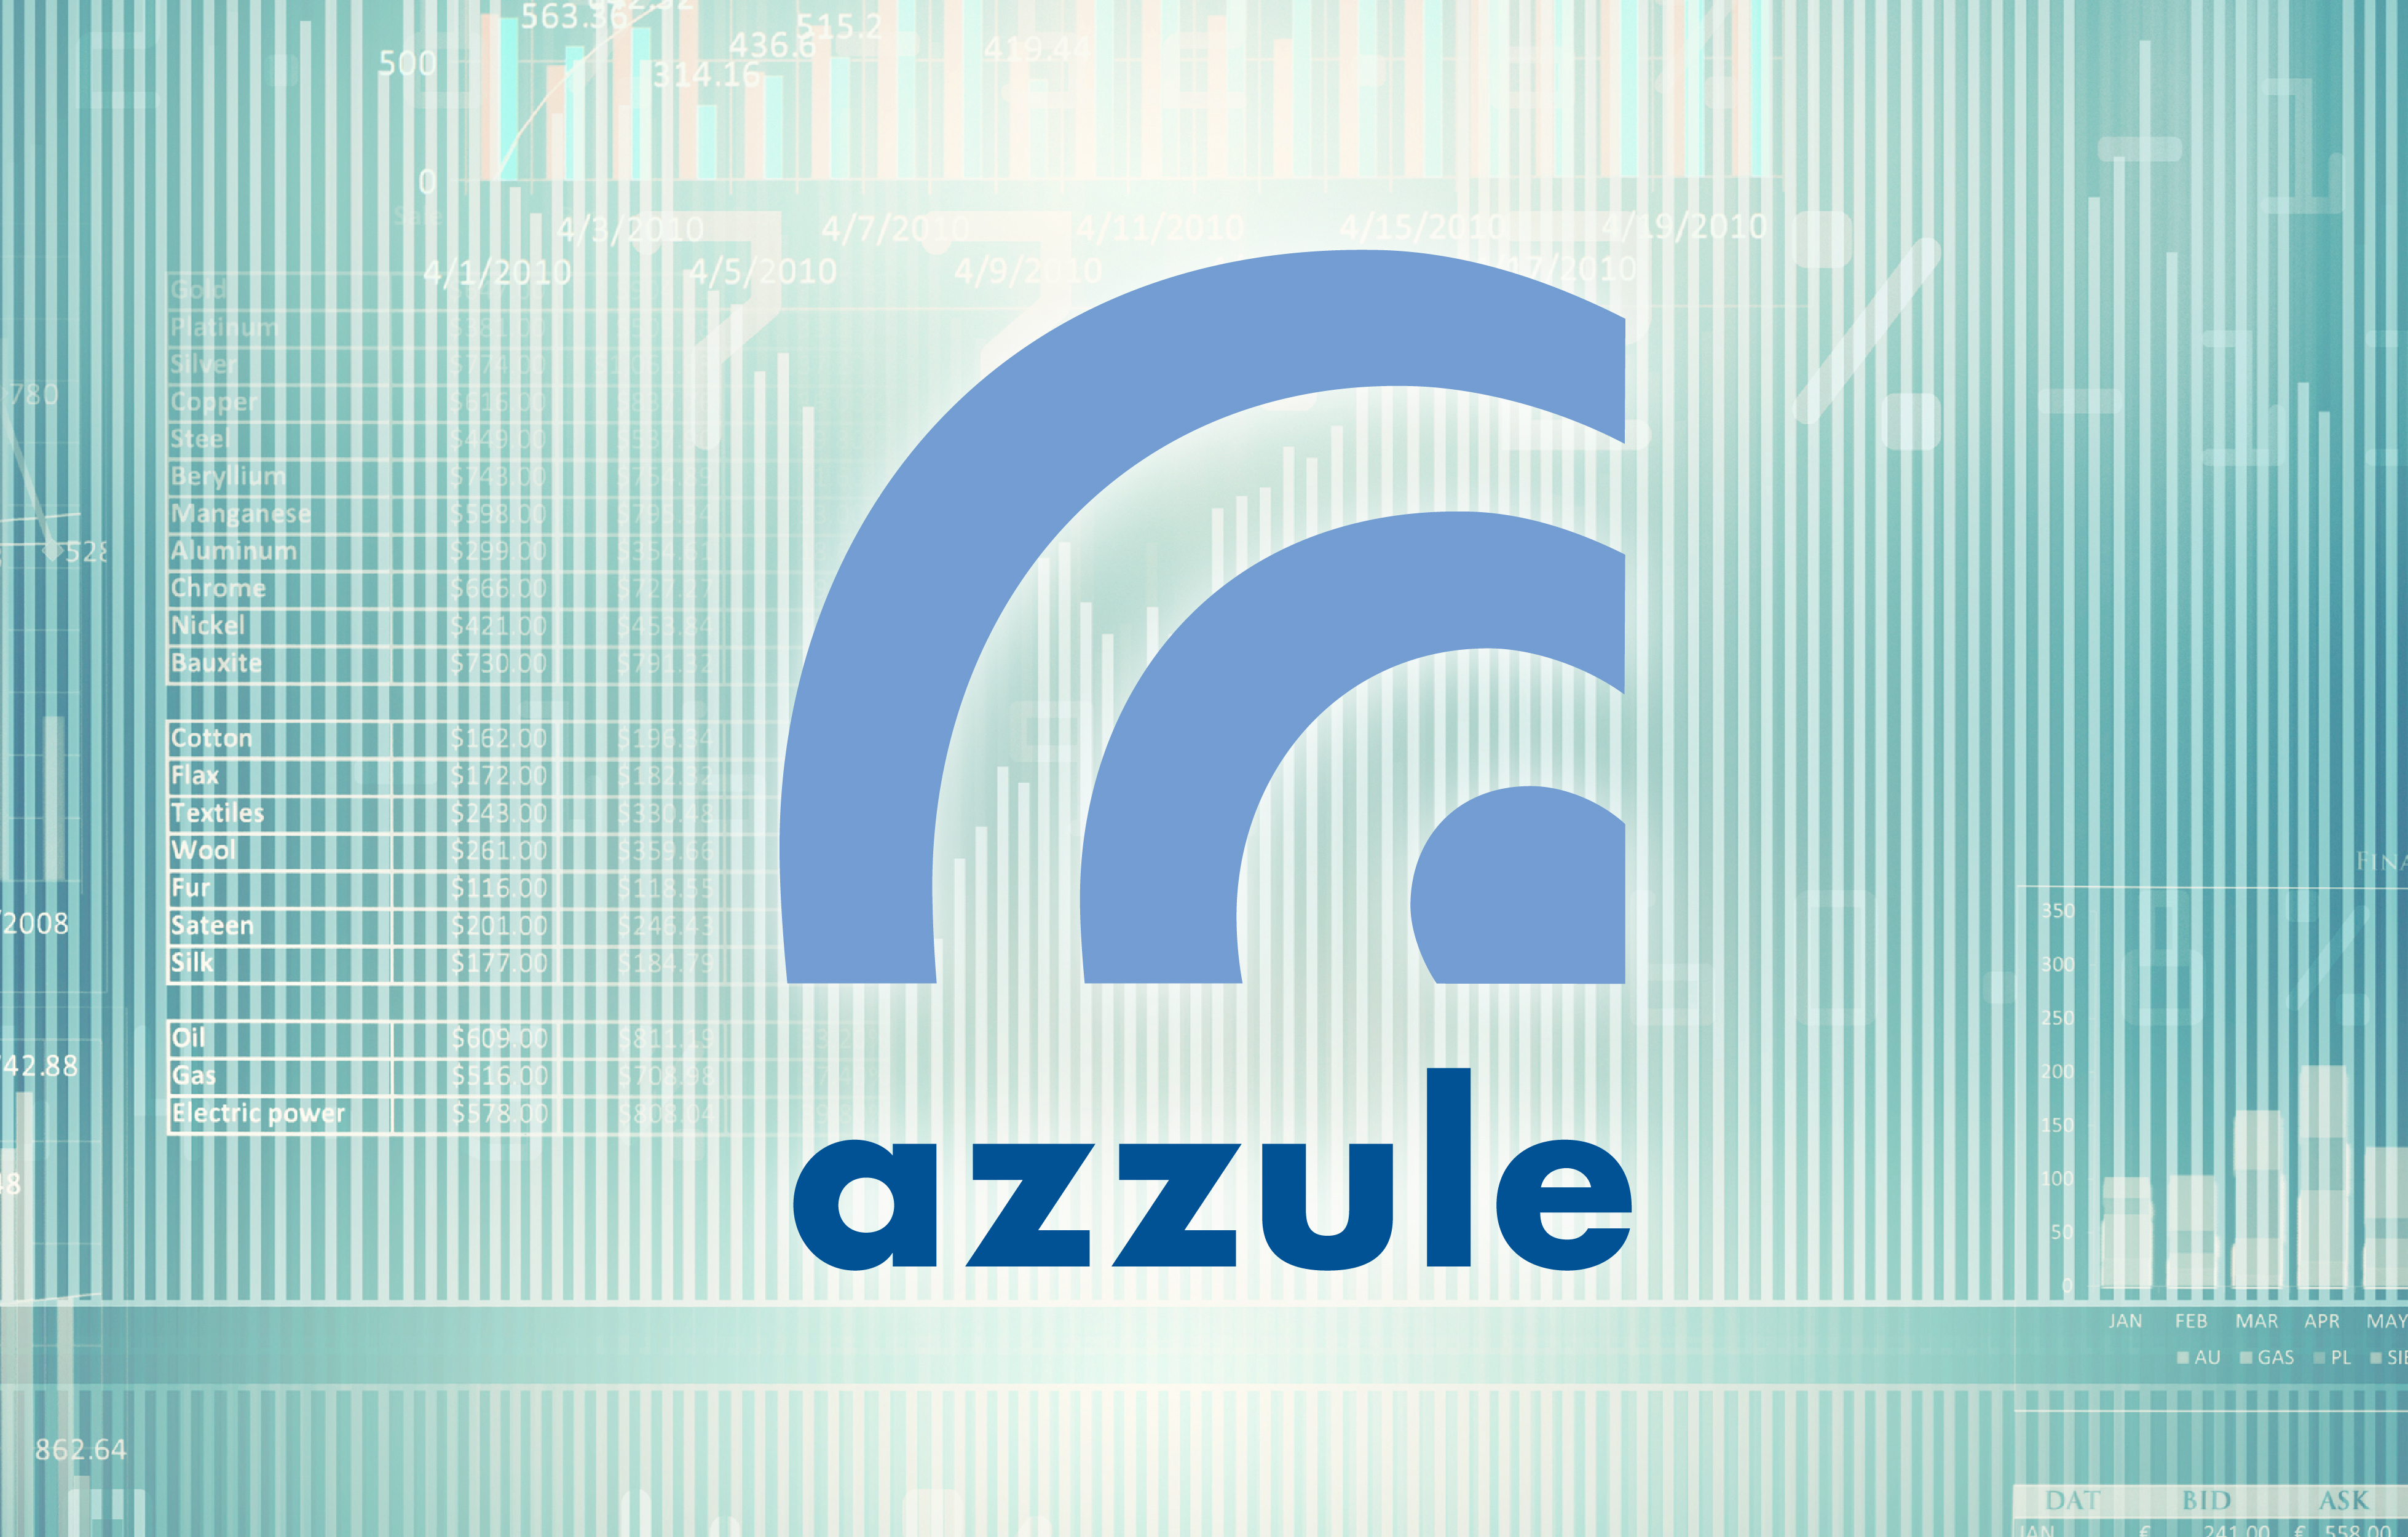 Azzule Systems, Blue Azzule Graphbic and Azzule Logo Type with Technology Background Graphics